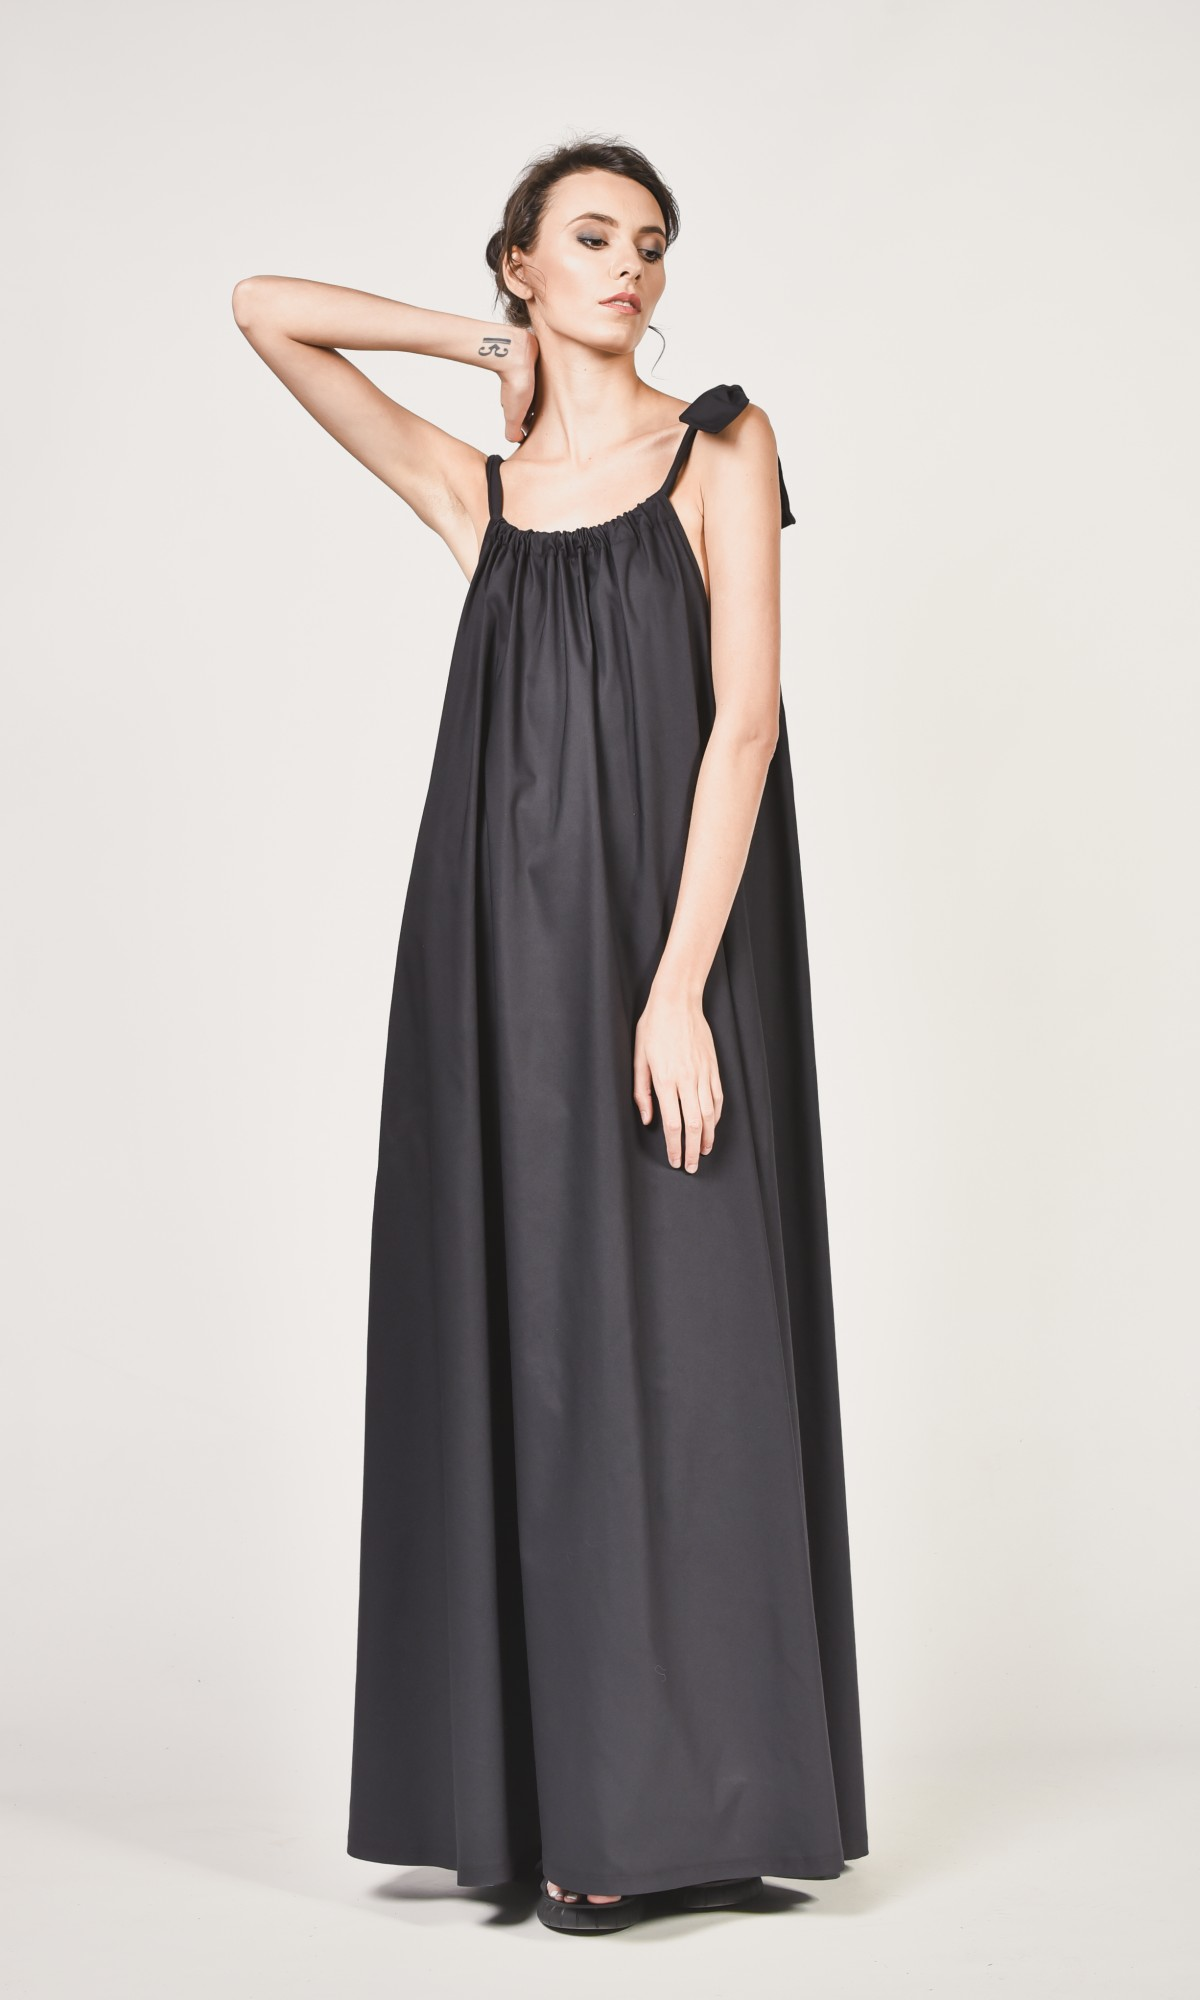 Maxi Dress With Adjustable Strap